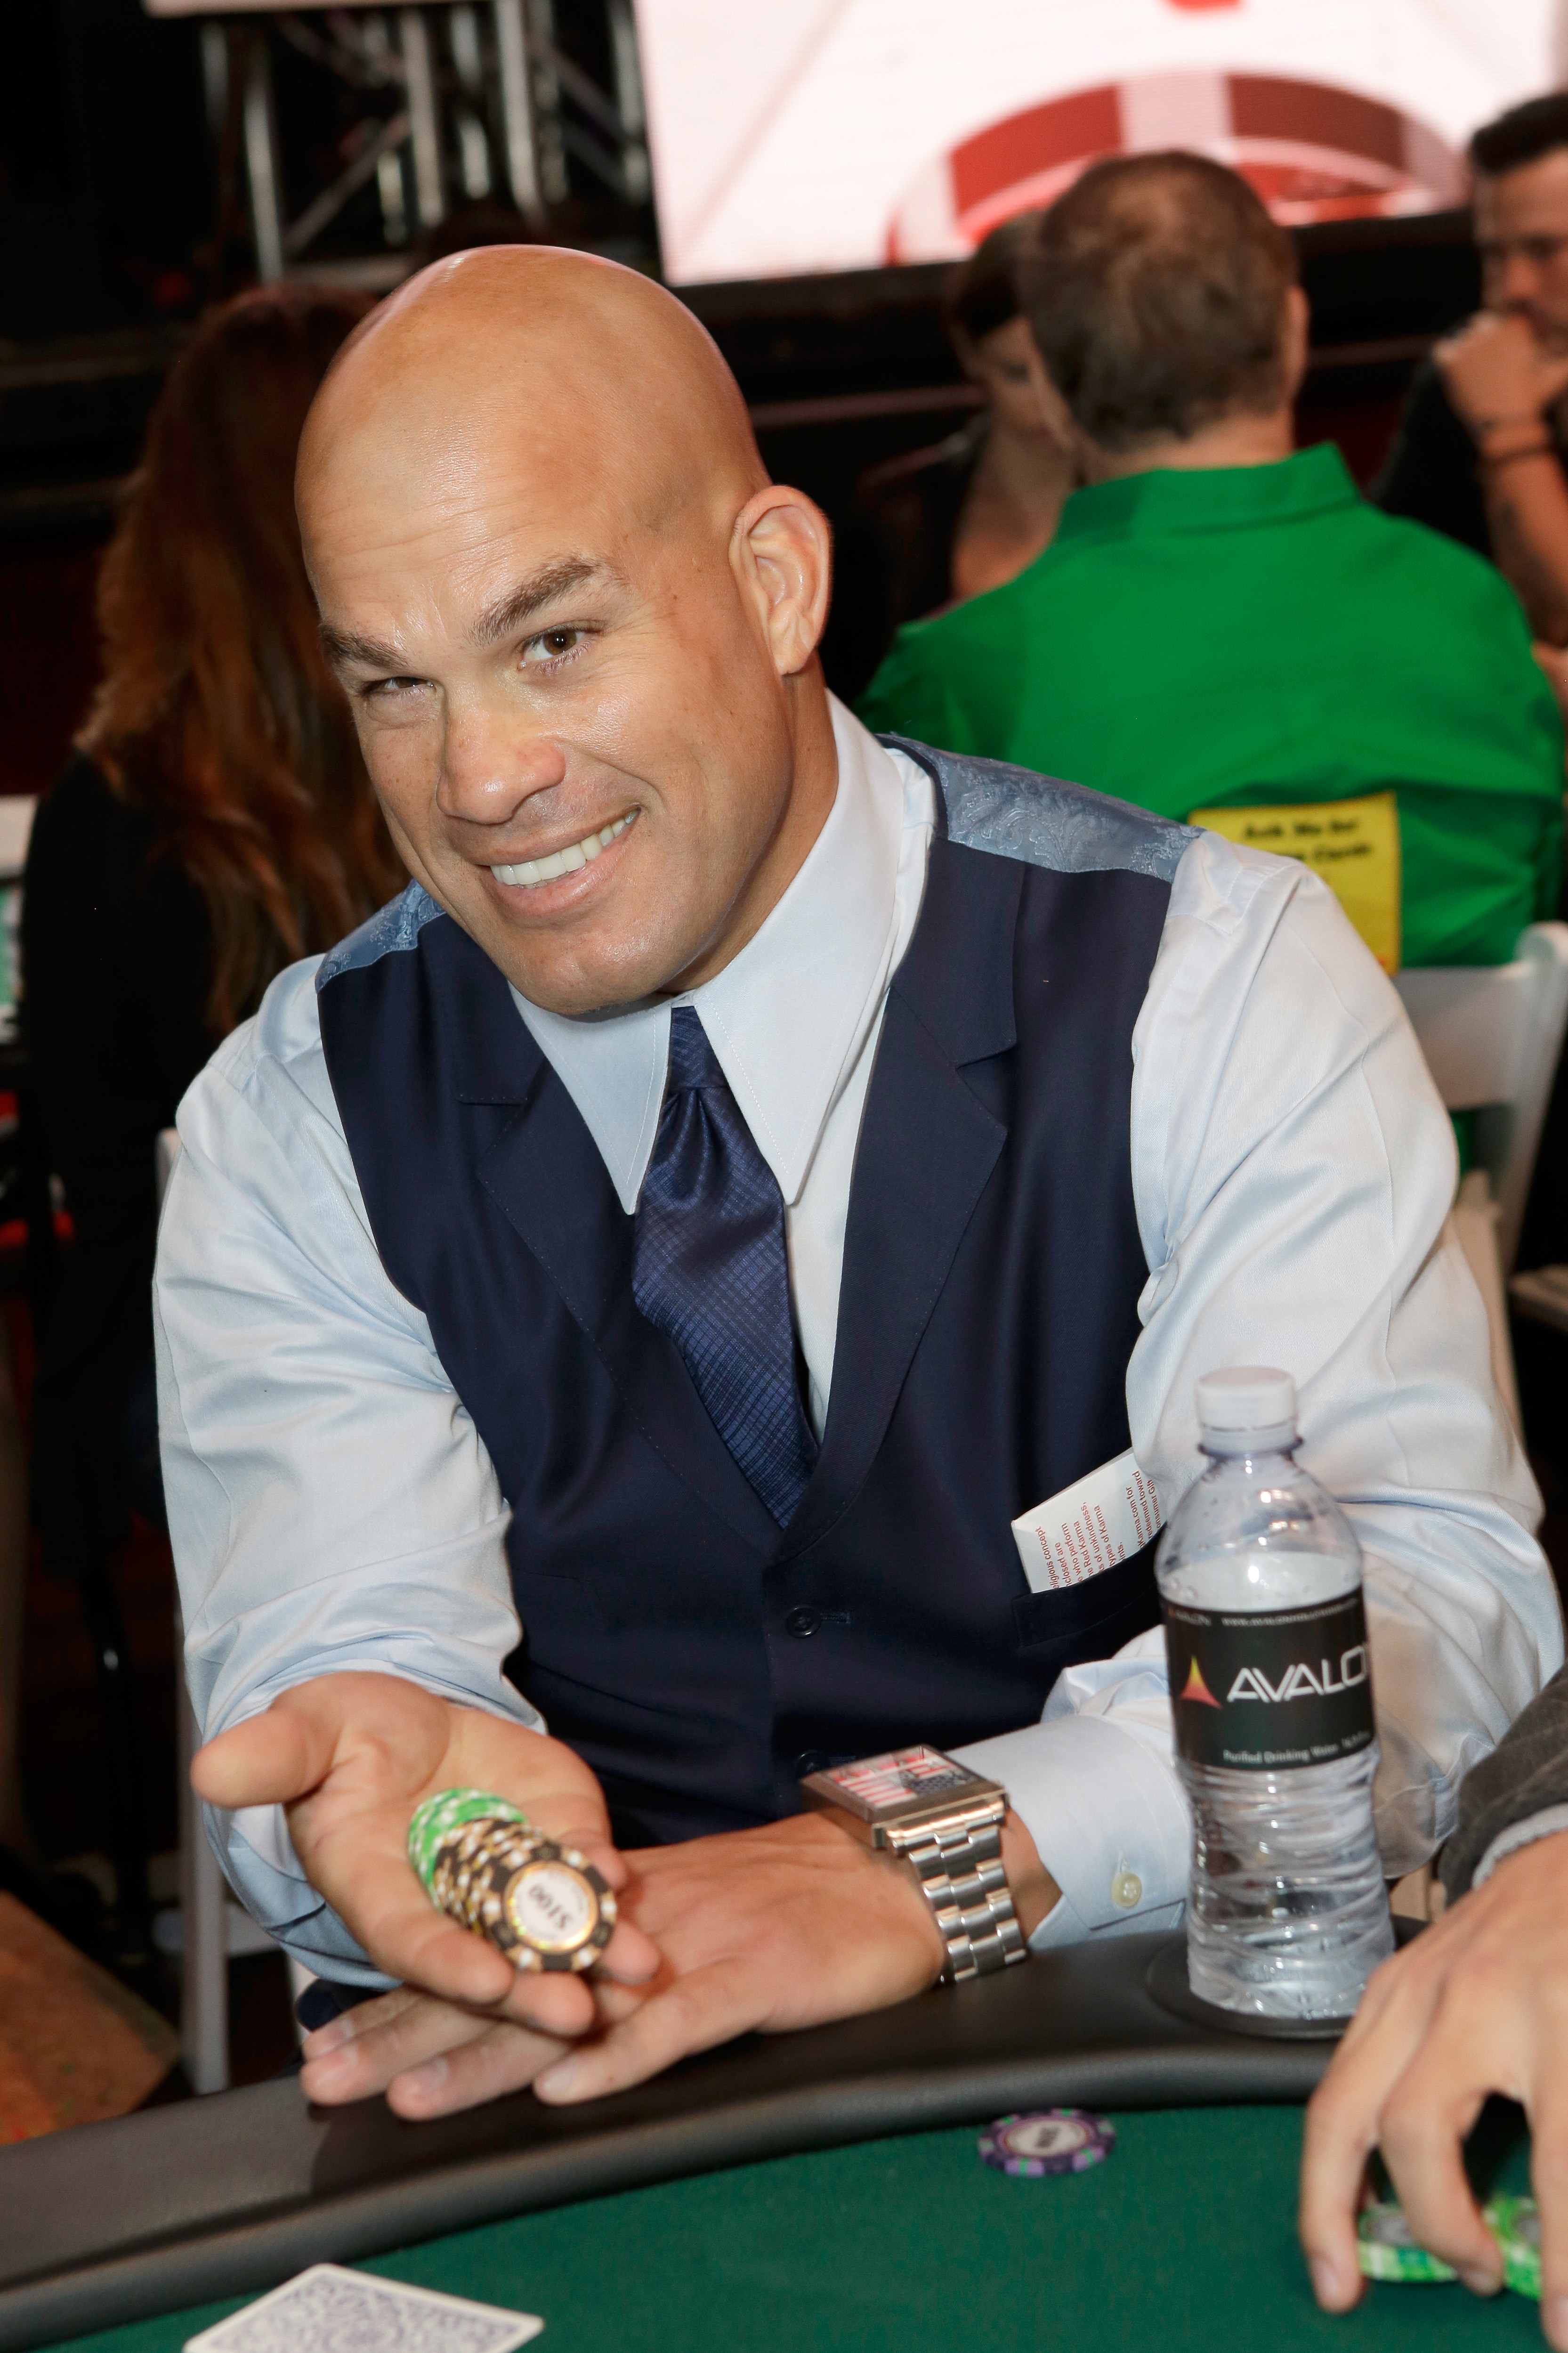 Los Angeles Police Memorial Foundation Celebrity Poker Tournament and Party